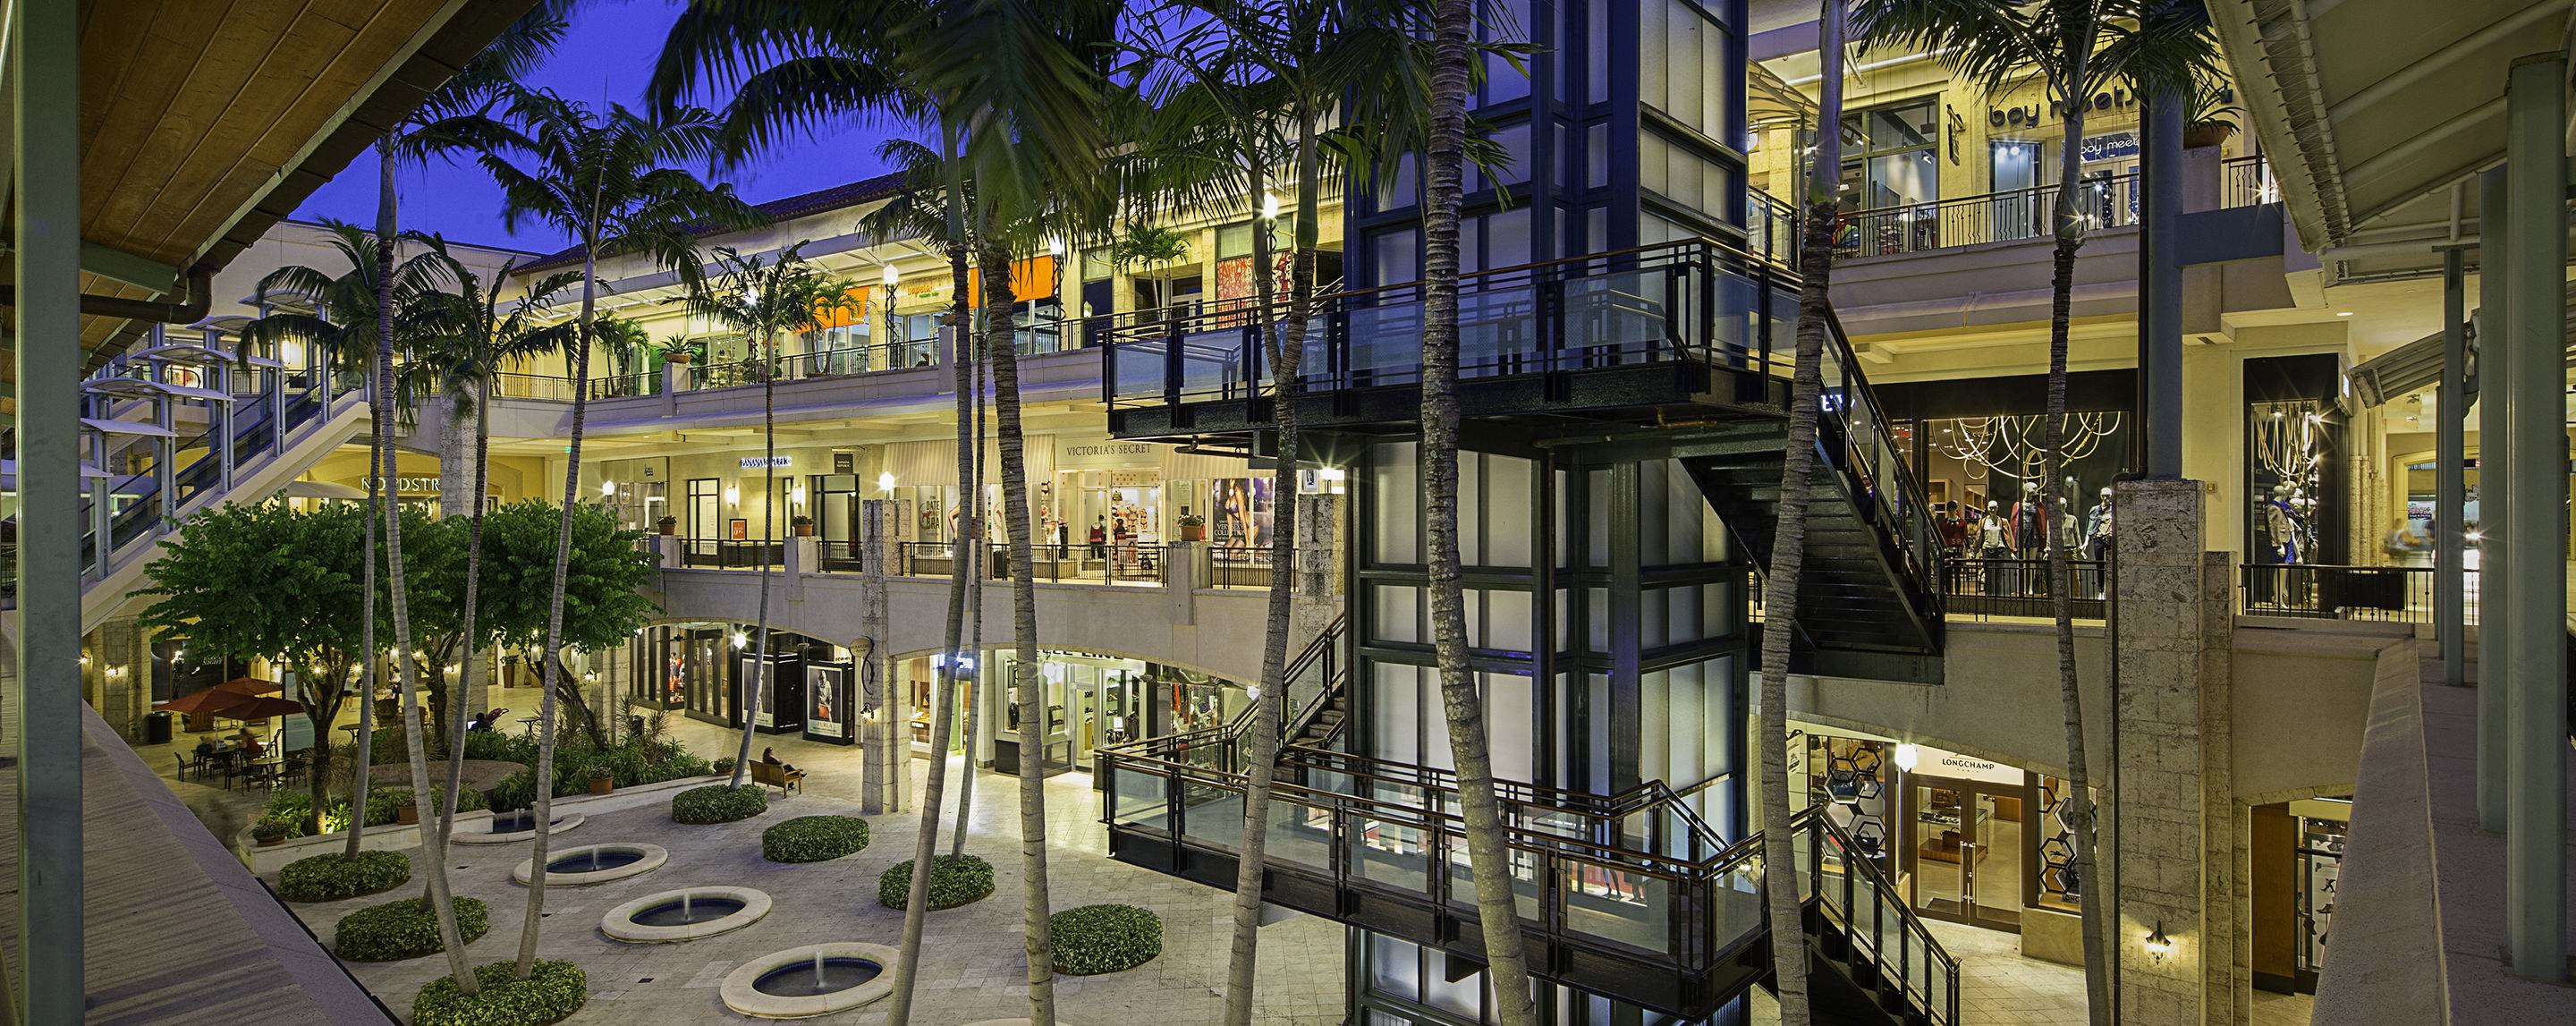 In an outdoor courtyard at Shops at Merrick Park, palm trees and an elevator with attached stairs are surrounded by three levels of stores.